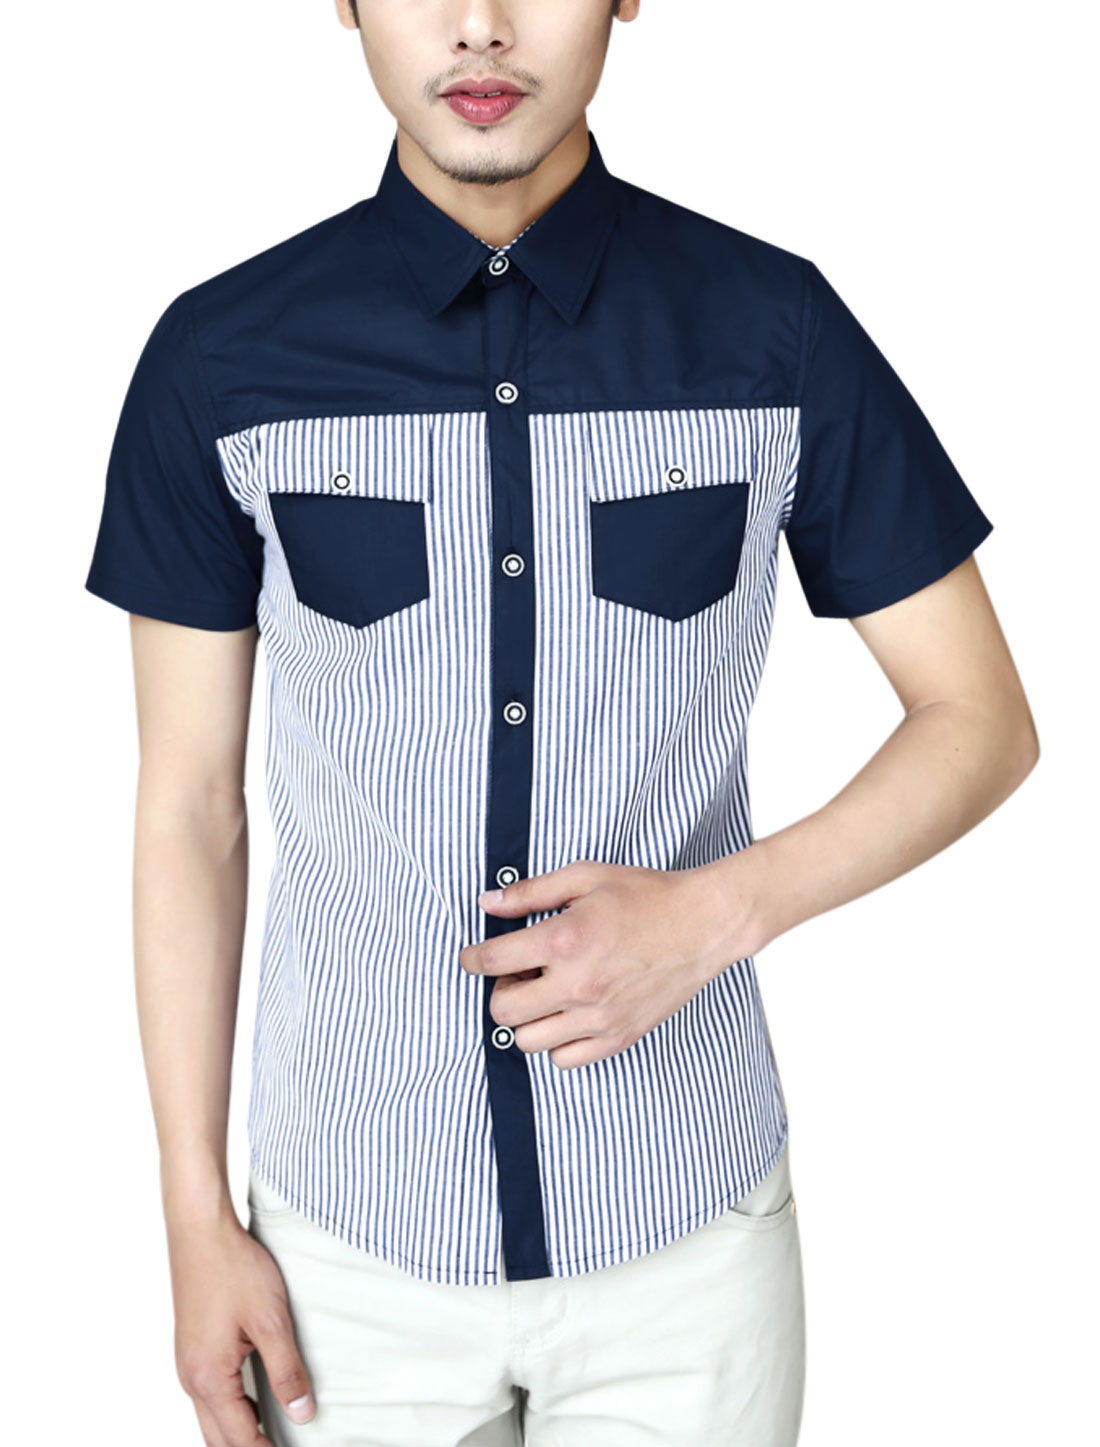 Men Point Collar Stripes Contrast Color Round Hem Shirt Navy Blue M